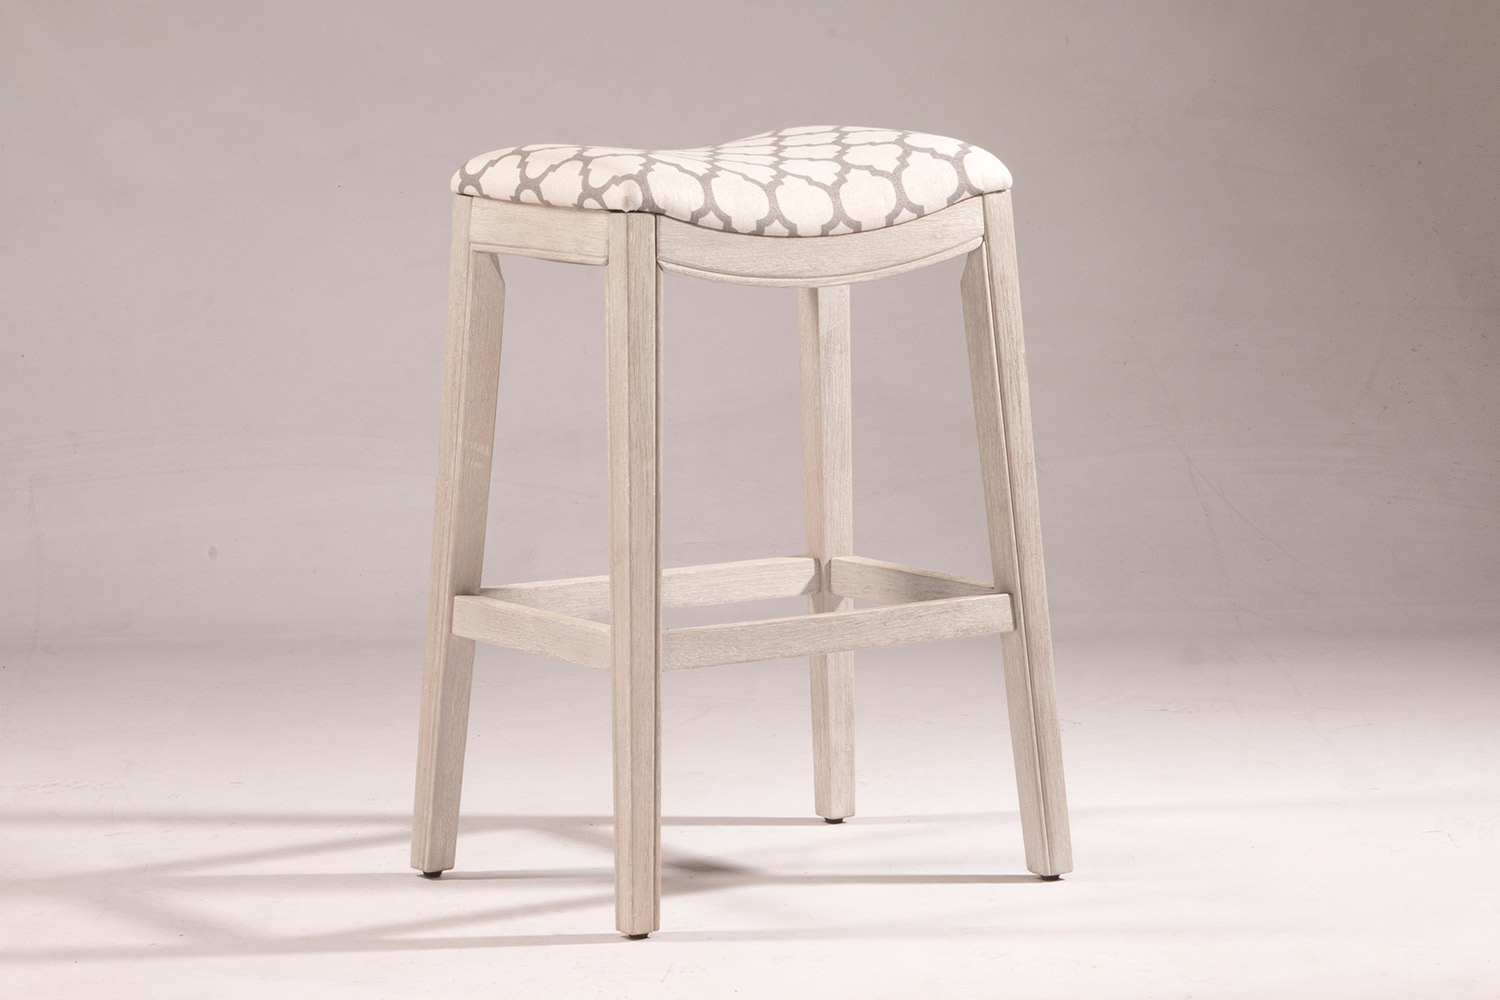 Hillsdale Sorella Non-Swivel Counter Stool - White - Trellis Ash Fabric